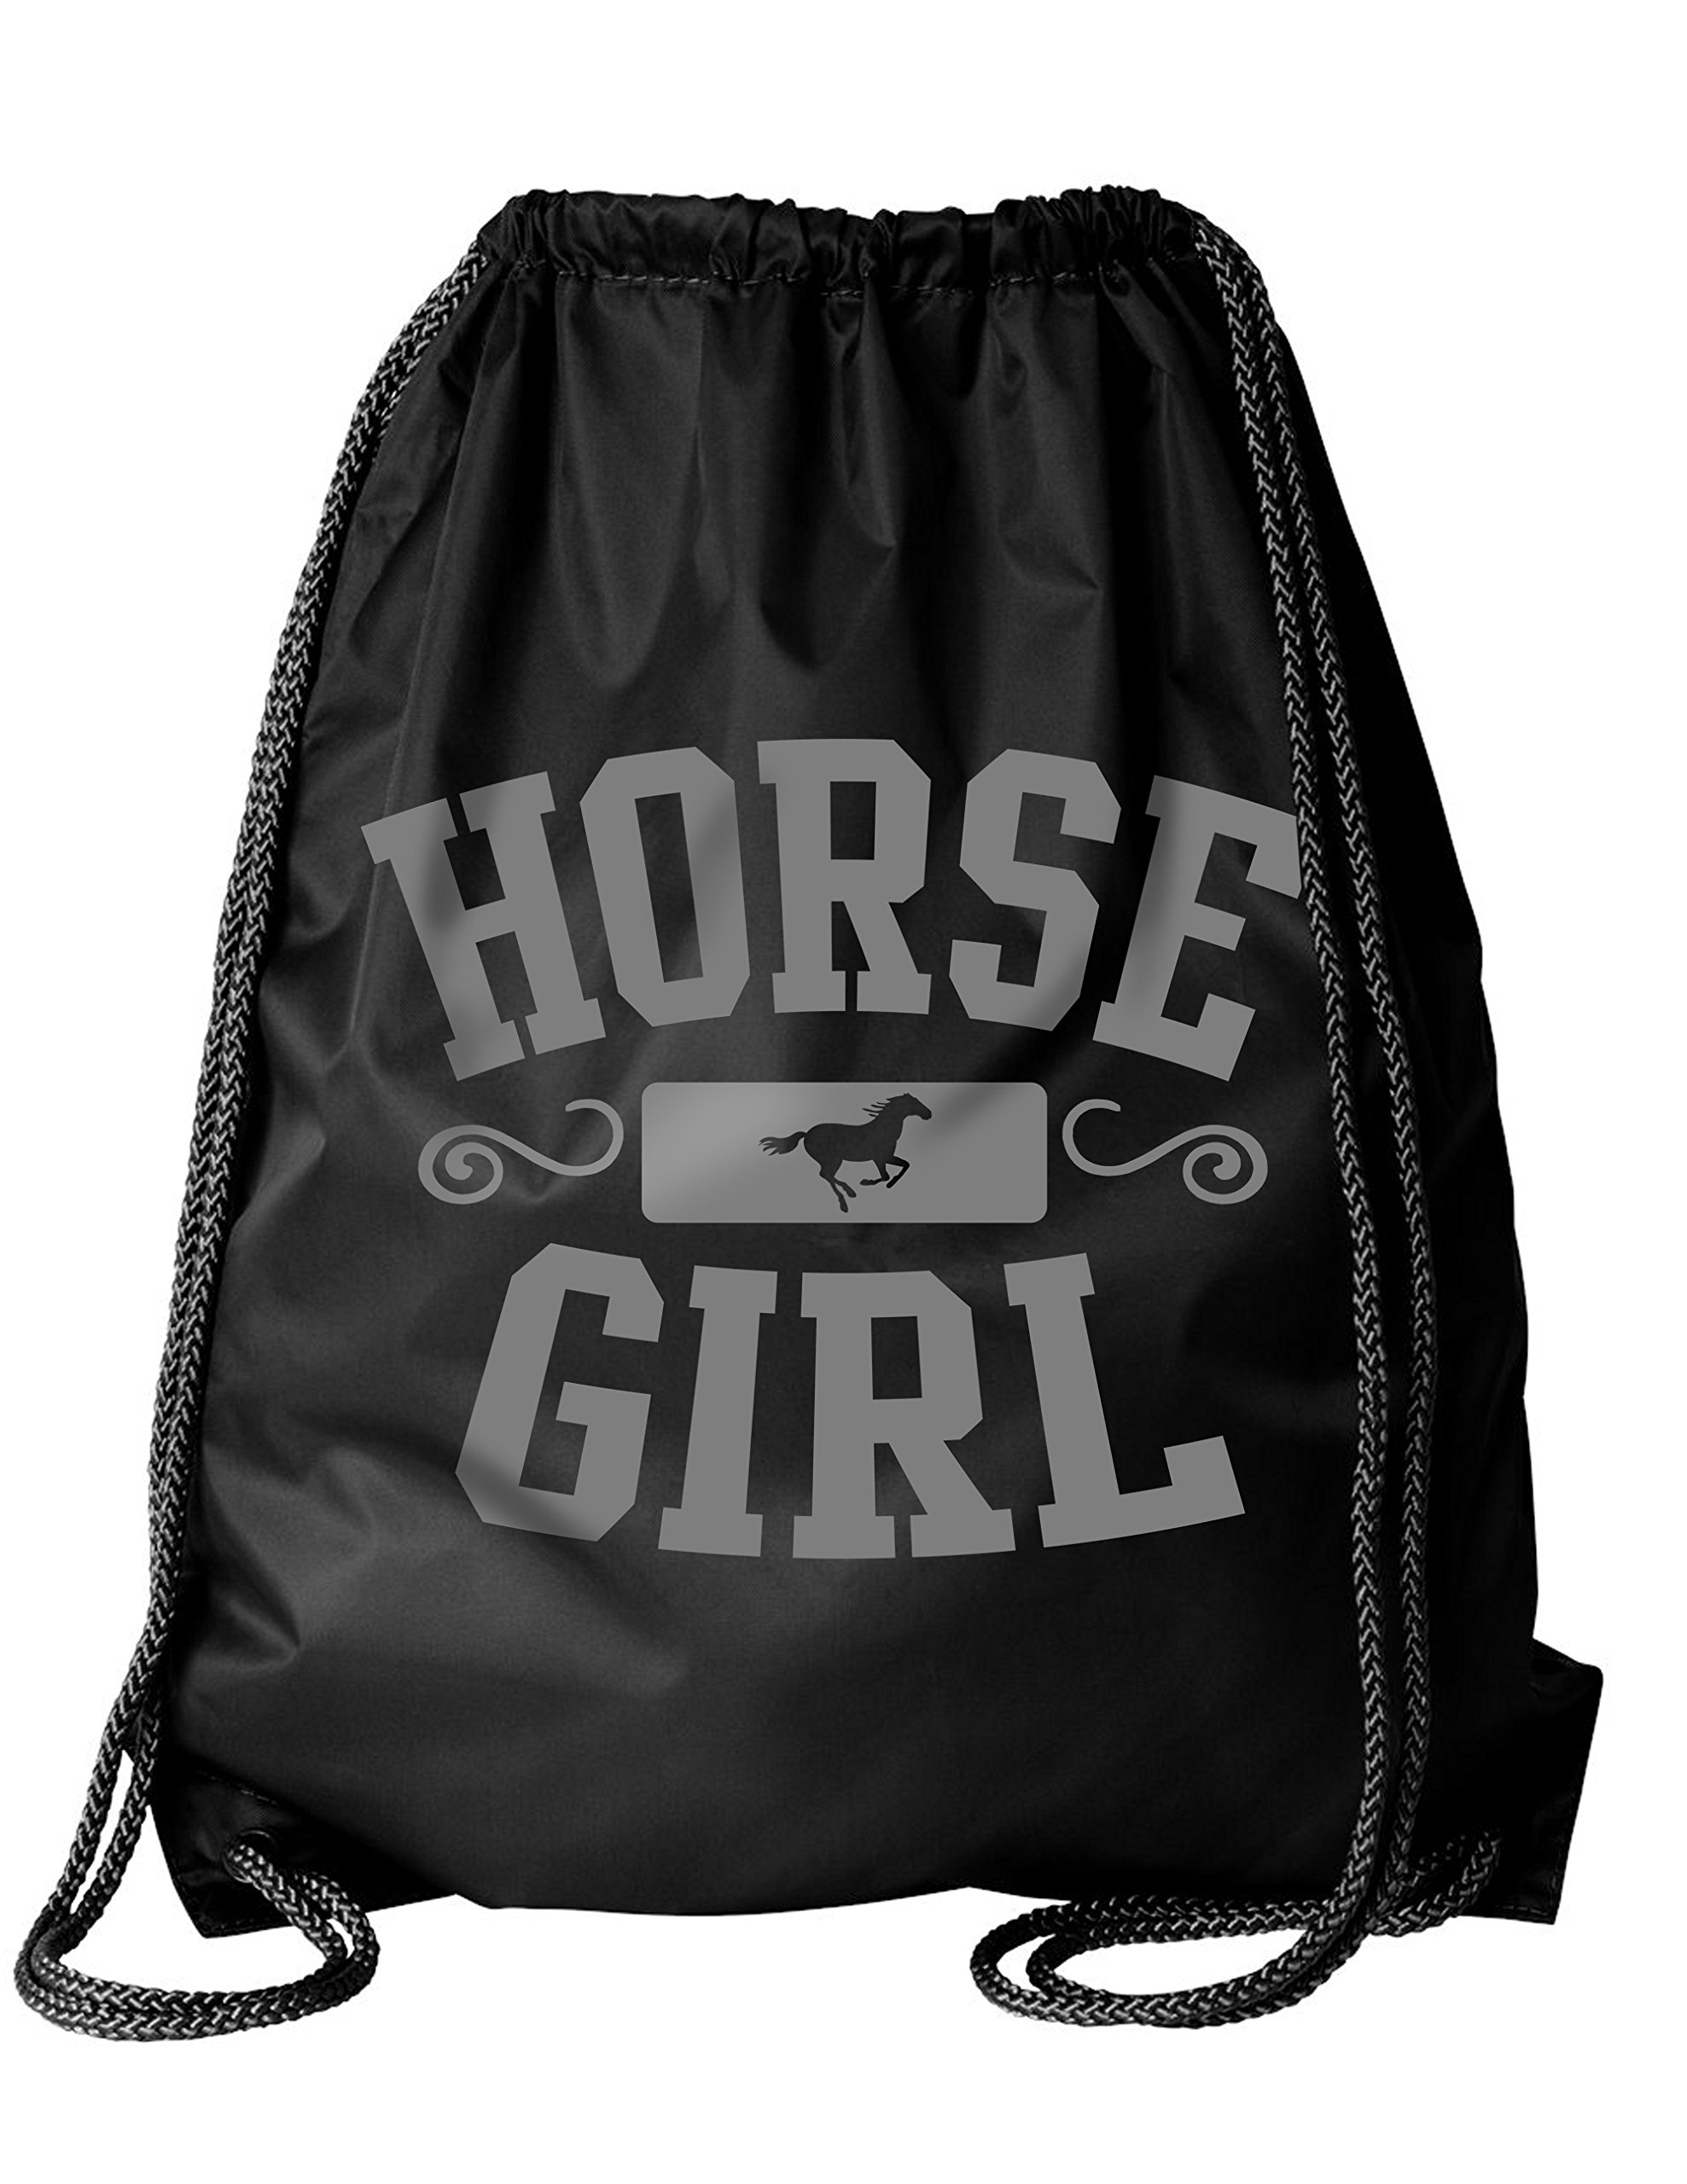 Activewear Apparel Equestrian Drawstring Bag